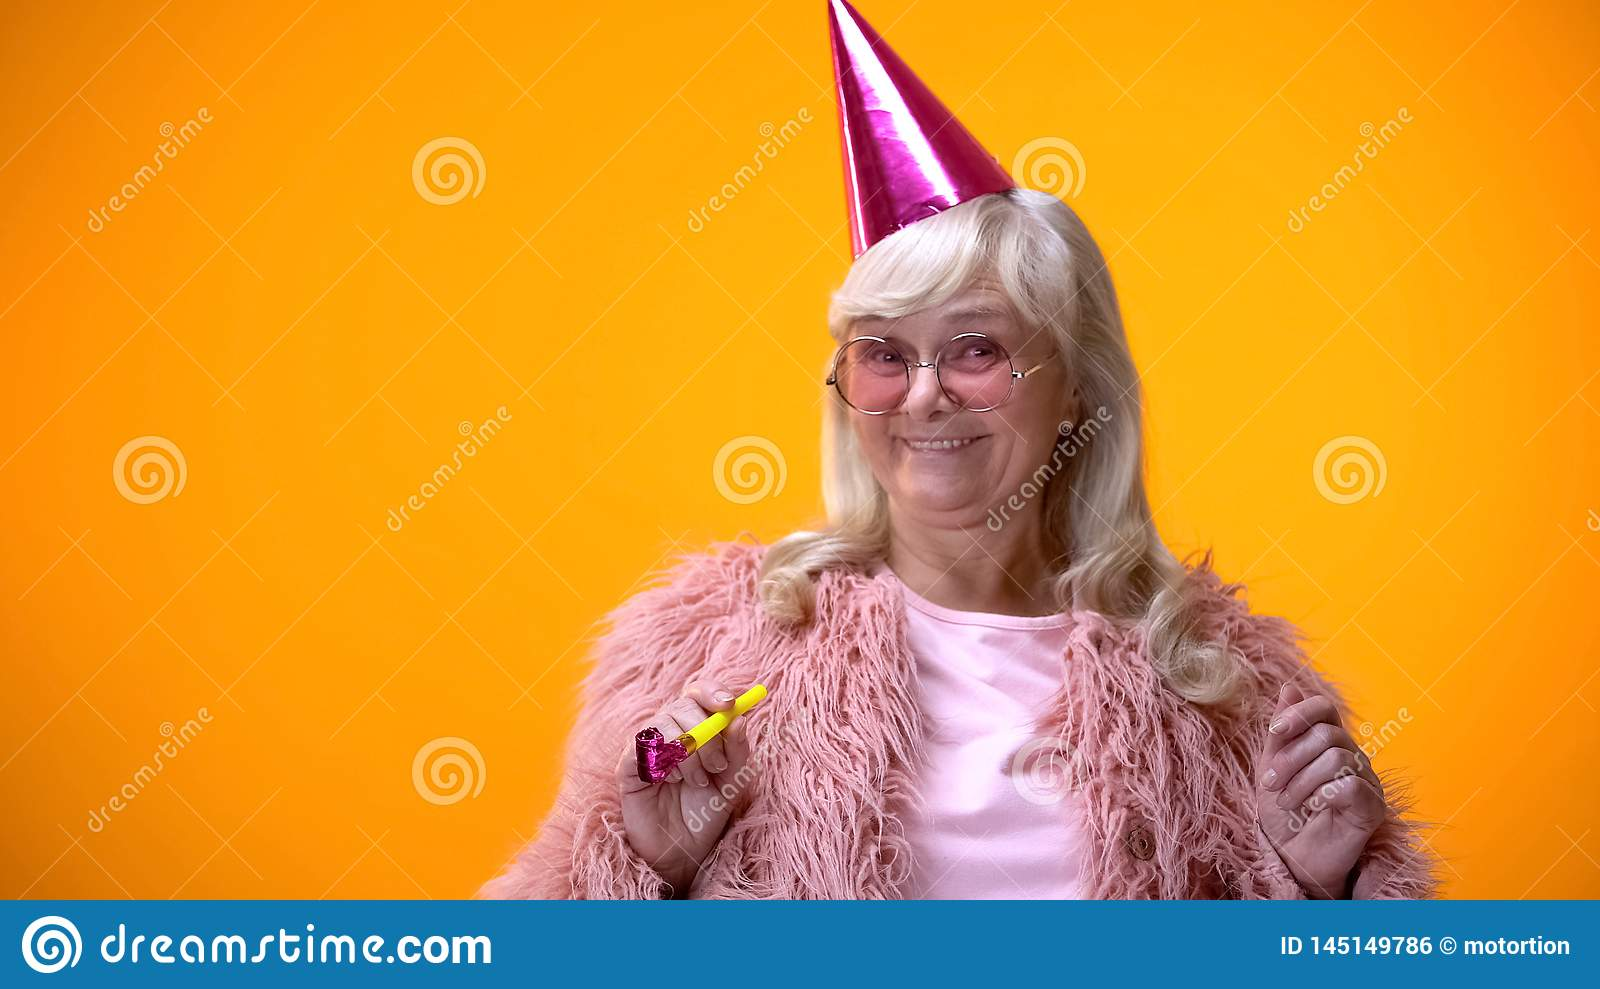 Happy aged woman in pink coat and round glasses celebrating birthday anniversary